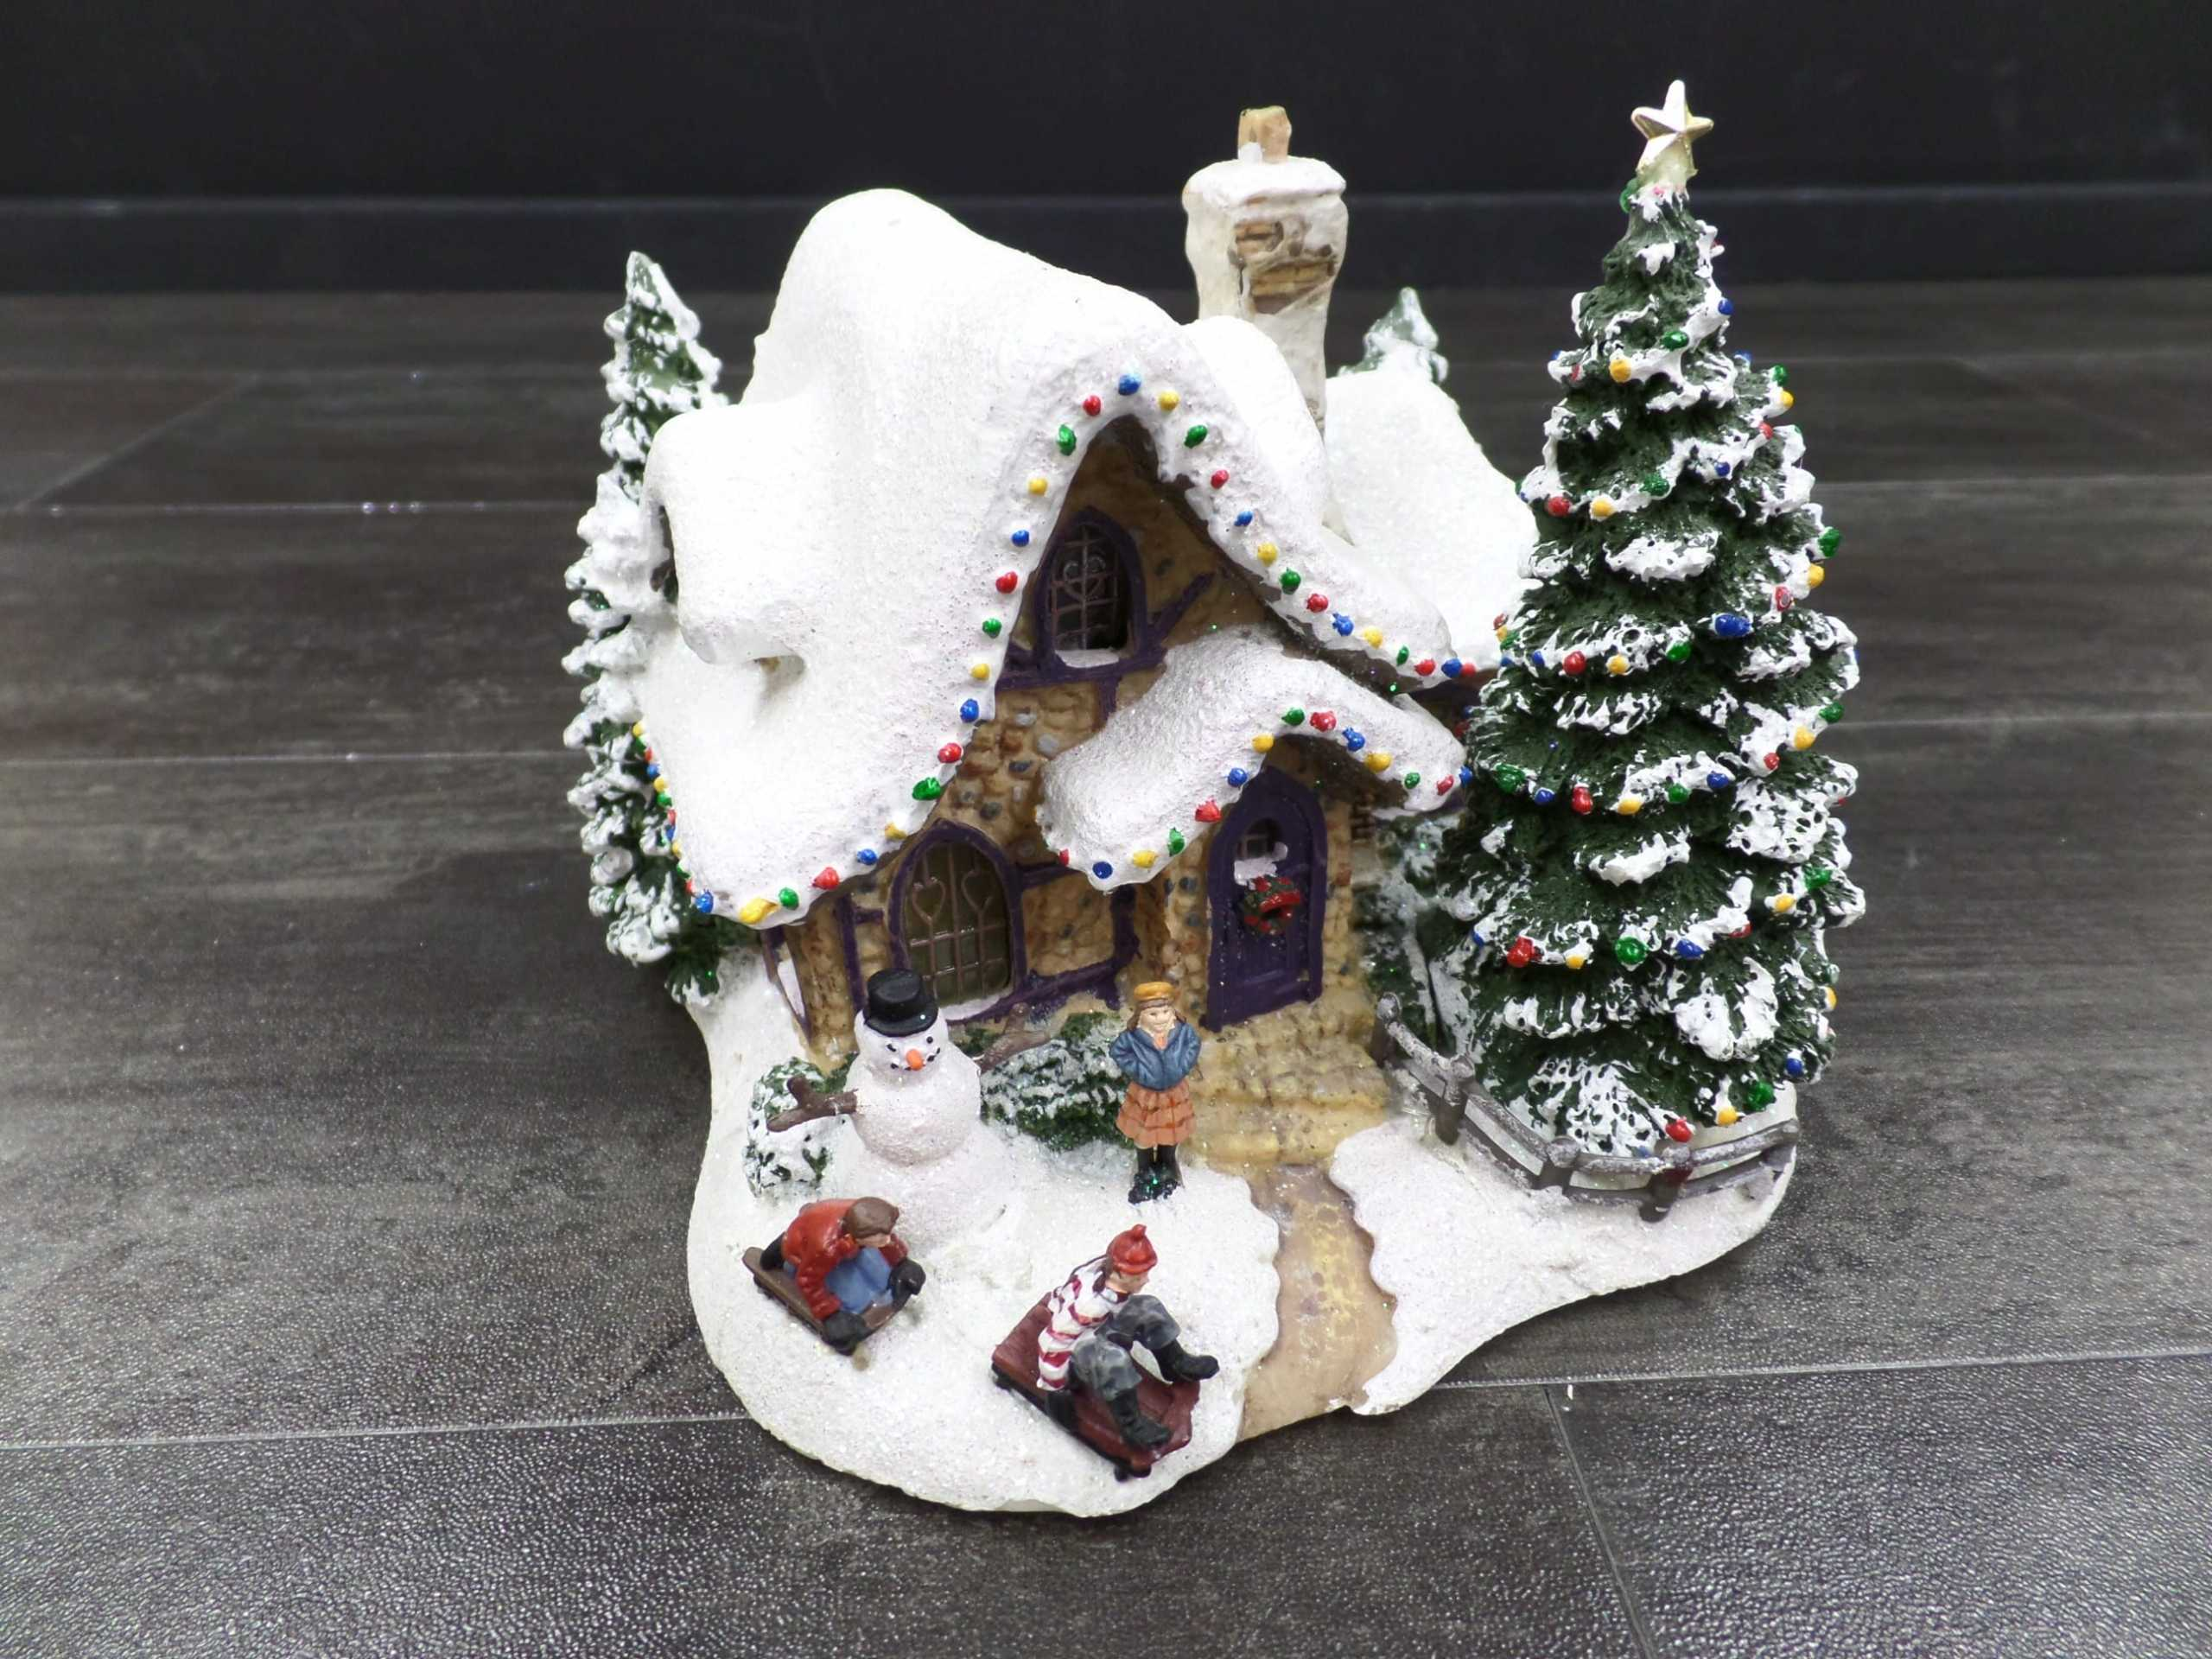 2006 THOMAS KINKADE SWEETHEART COTTAGE <br/> Donated by: WPBS SUPPORTER <br/> Valued at: $30 <br/> Buy It Now: $20